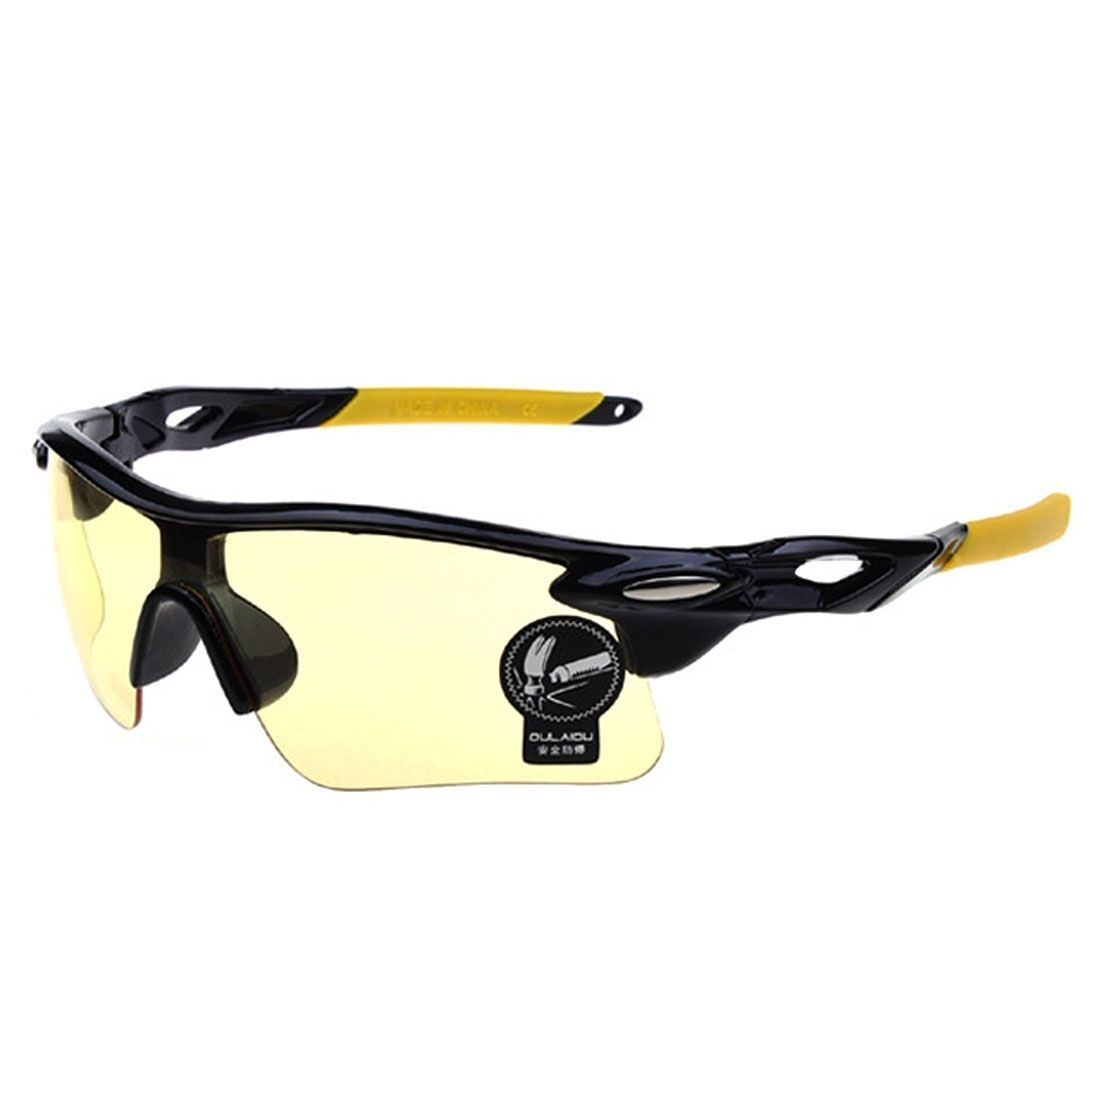 9ff17bb9c0cf Generic Outdoor Sports Cycling Goggles Bicycle Bike Riding Driving ...